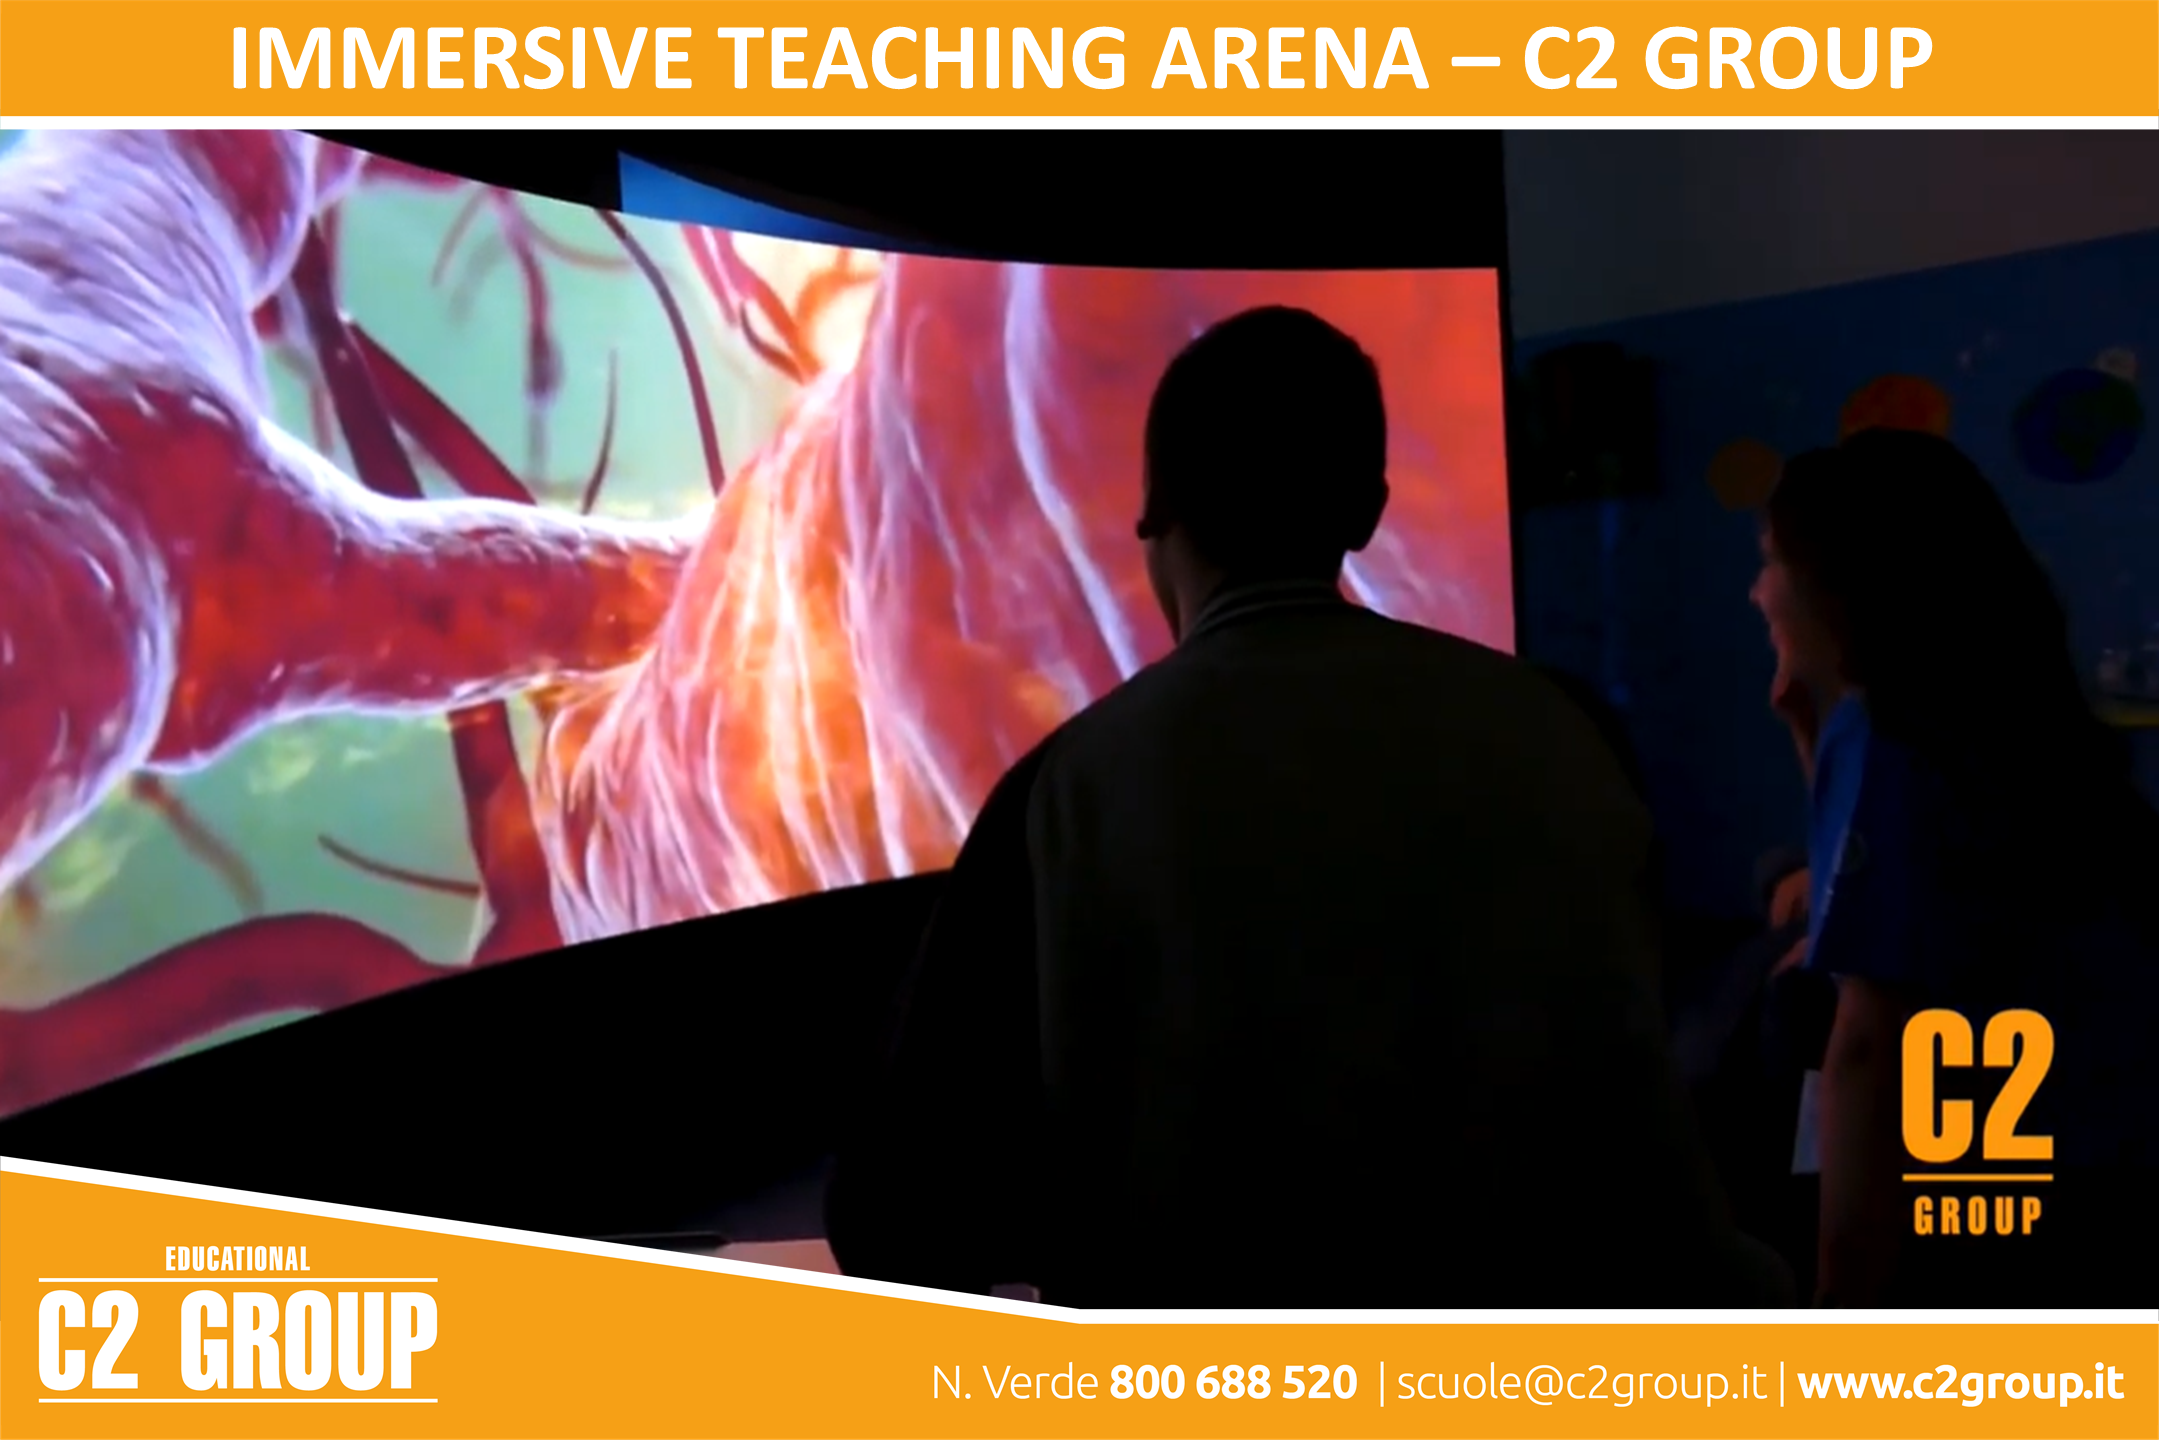 Immersive Teaching Arena